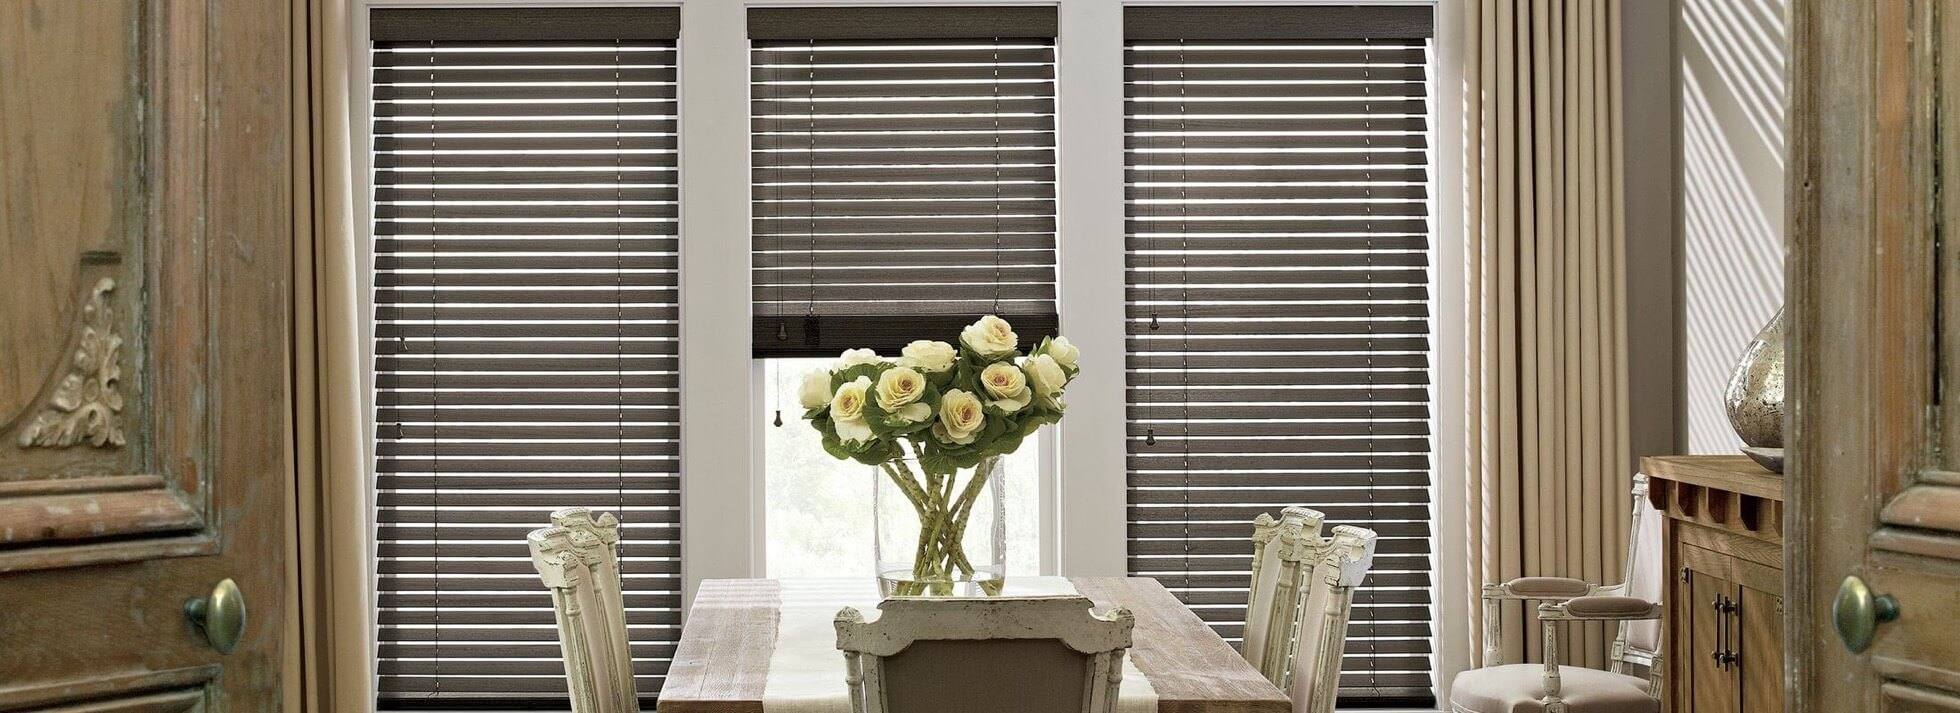 Choices of Window Treatments